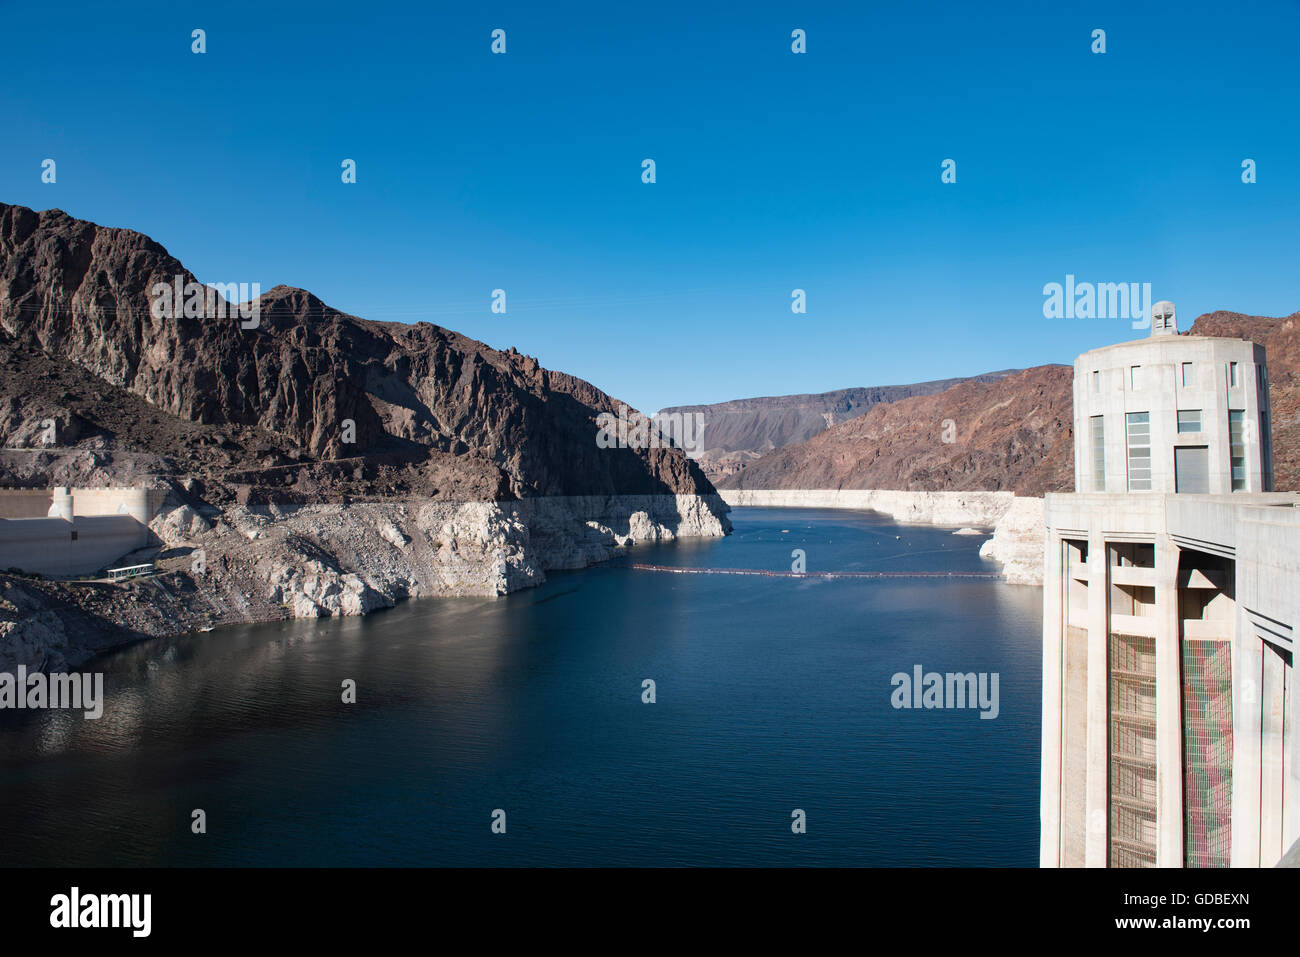 Lake Mead at Hoover Dam; note low water level, image taken April 2016 Stock Photo